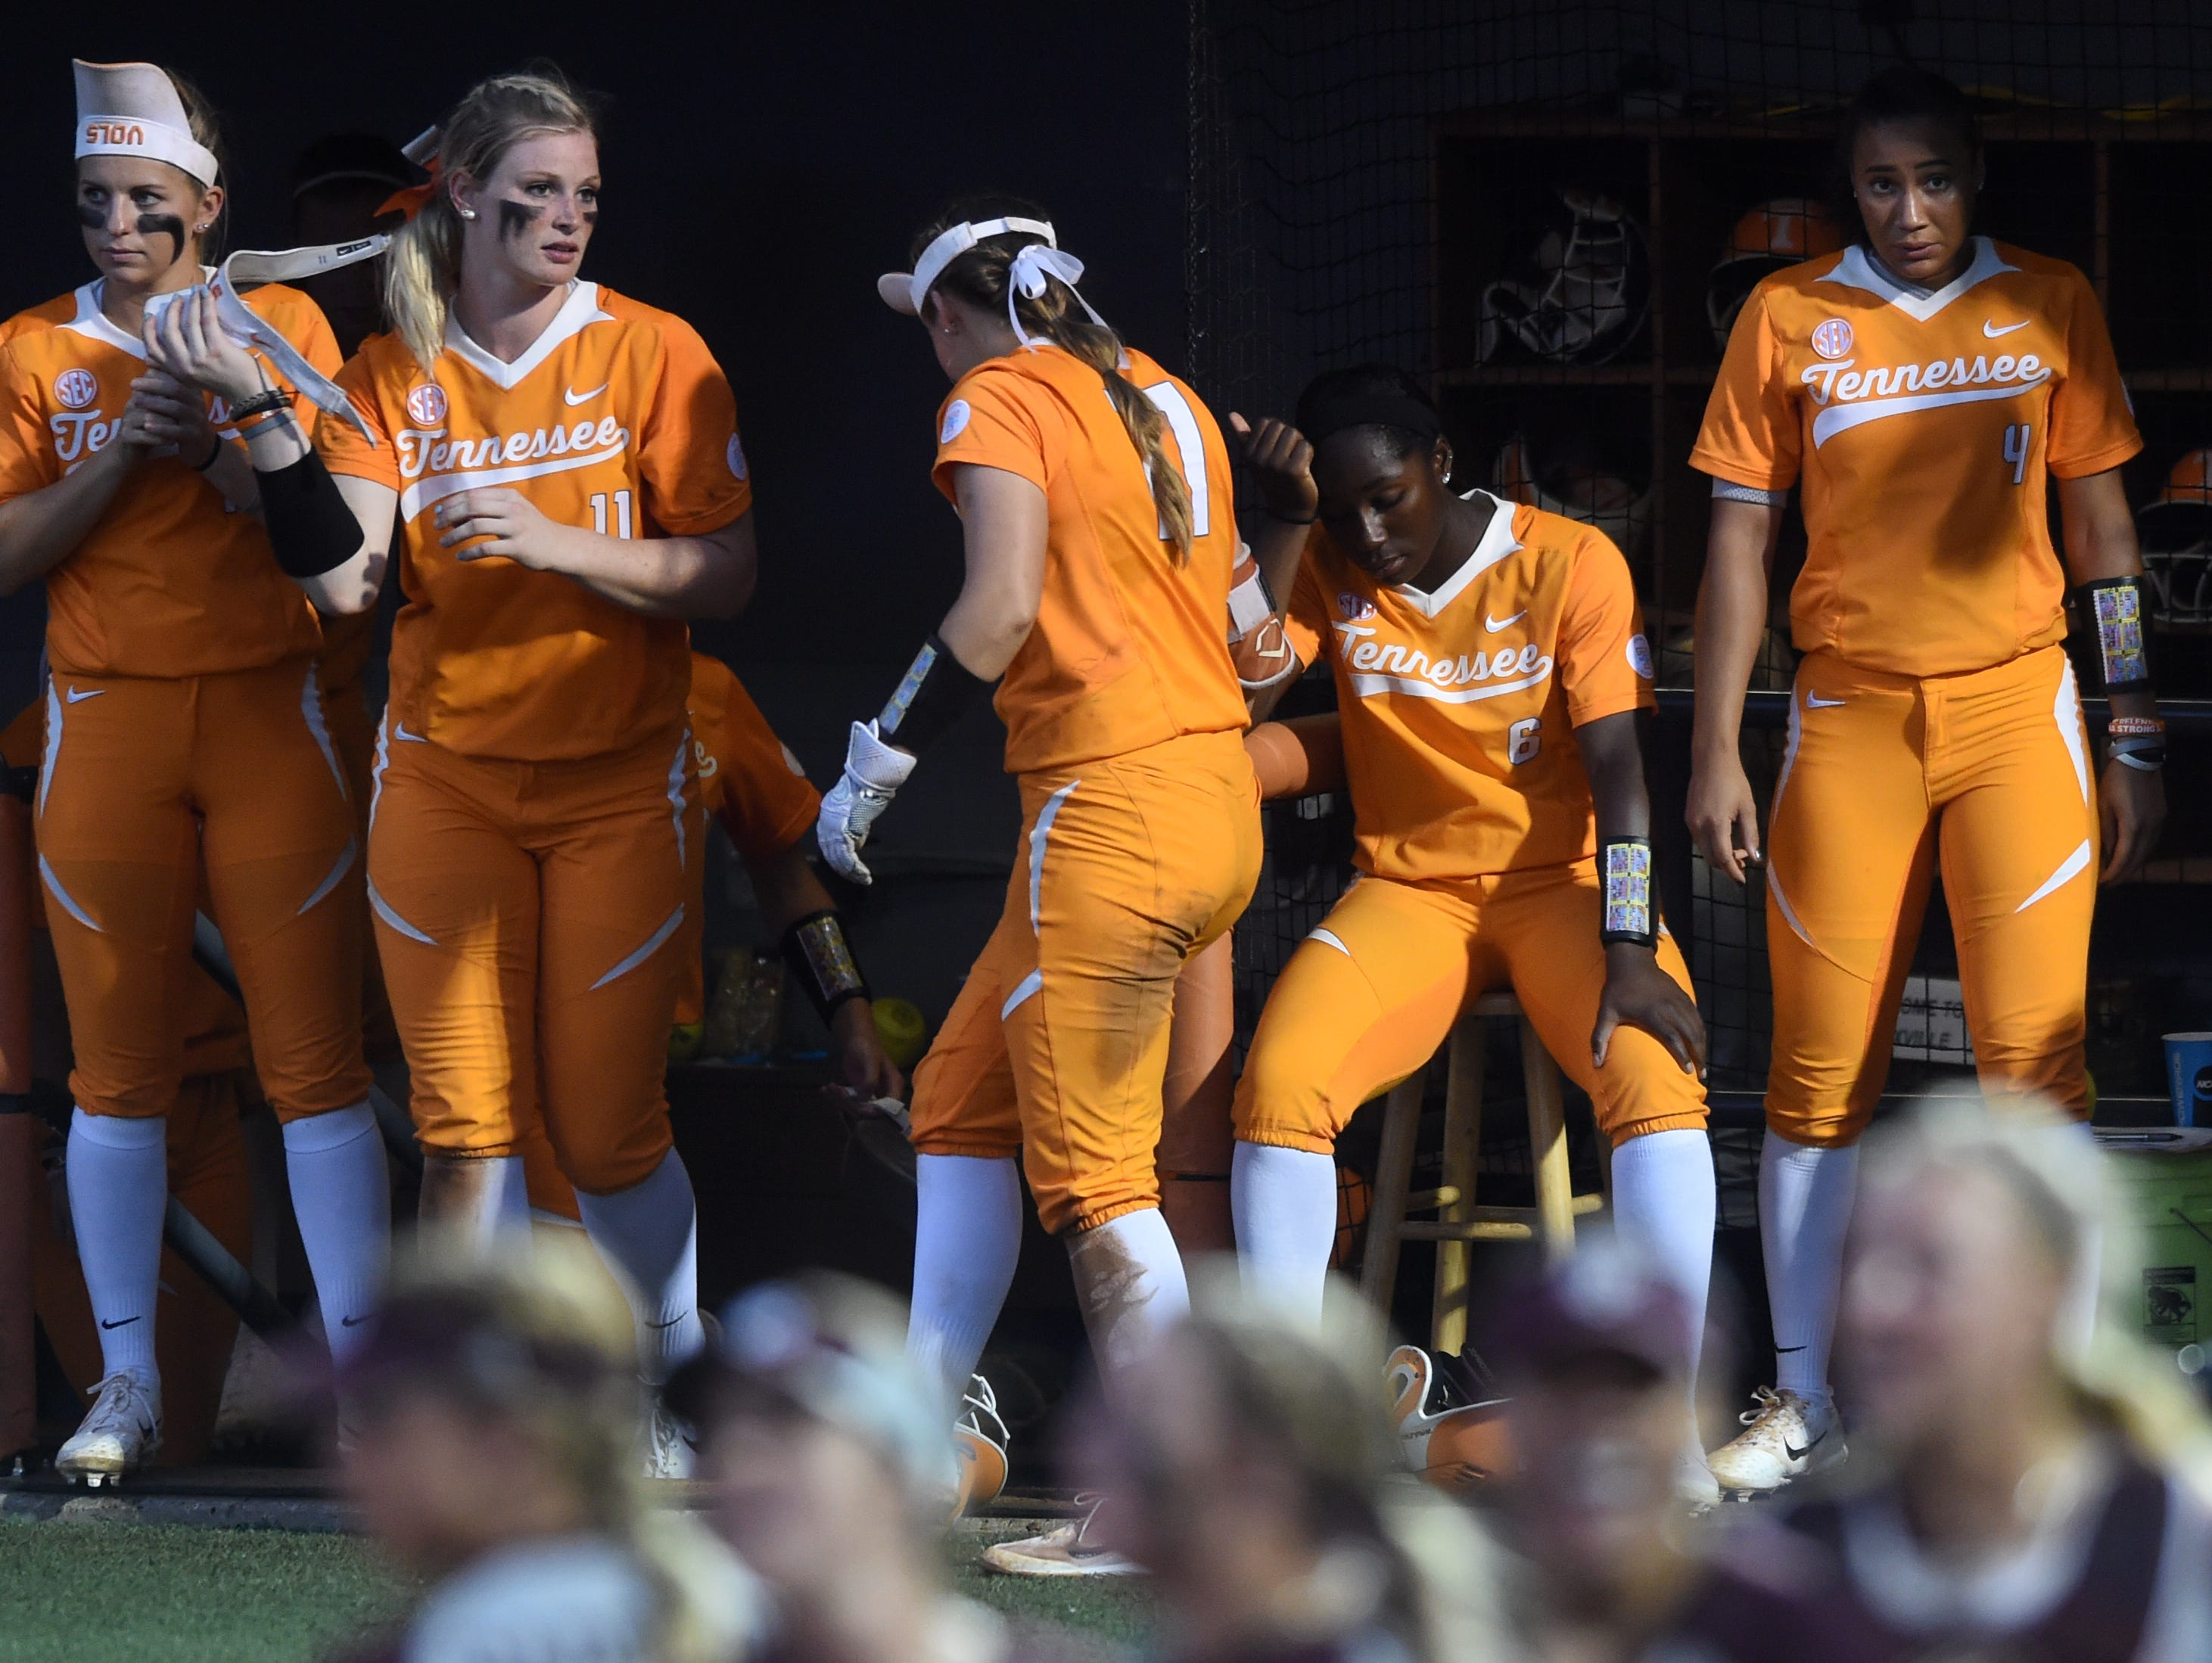 Tennessee reacts to Texas A&M's win after an NCAA Super Regional game between Tennessee and Texas A&M at Sherri Parker Lee Stadium on Saturday, May 27, 2017. Texas A&M defeated Tennessee 6-5.